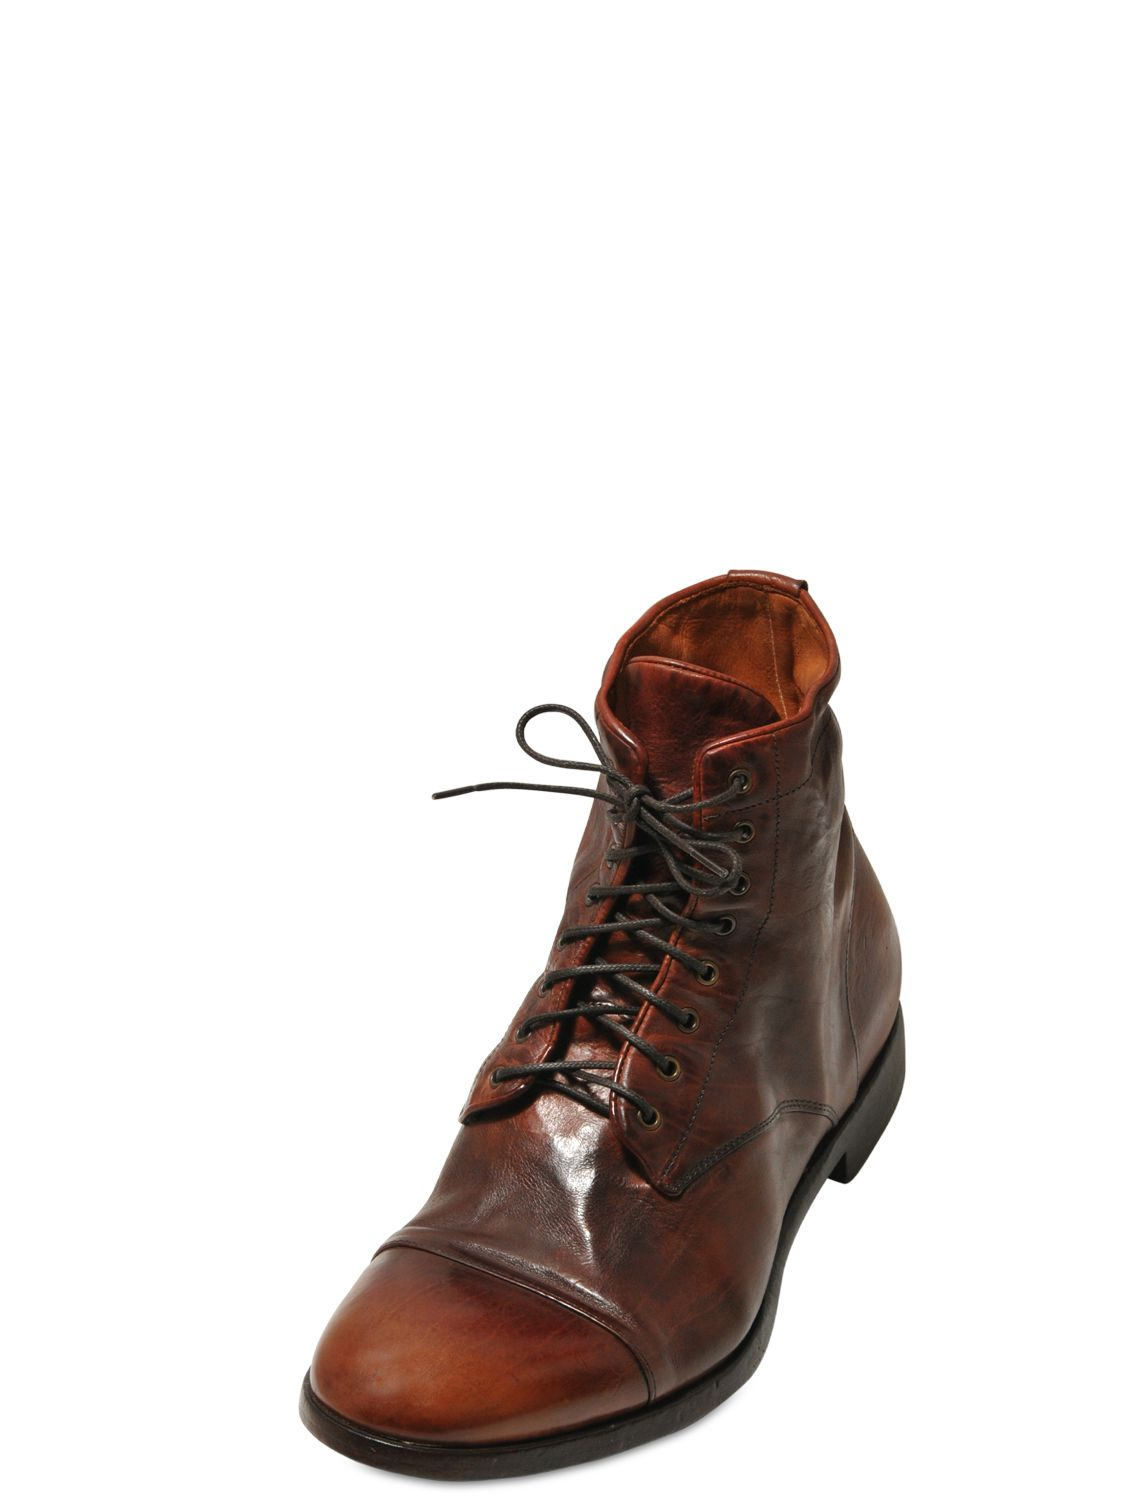 rolando sturlini washed leather lace up boots in brown for